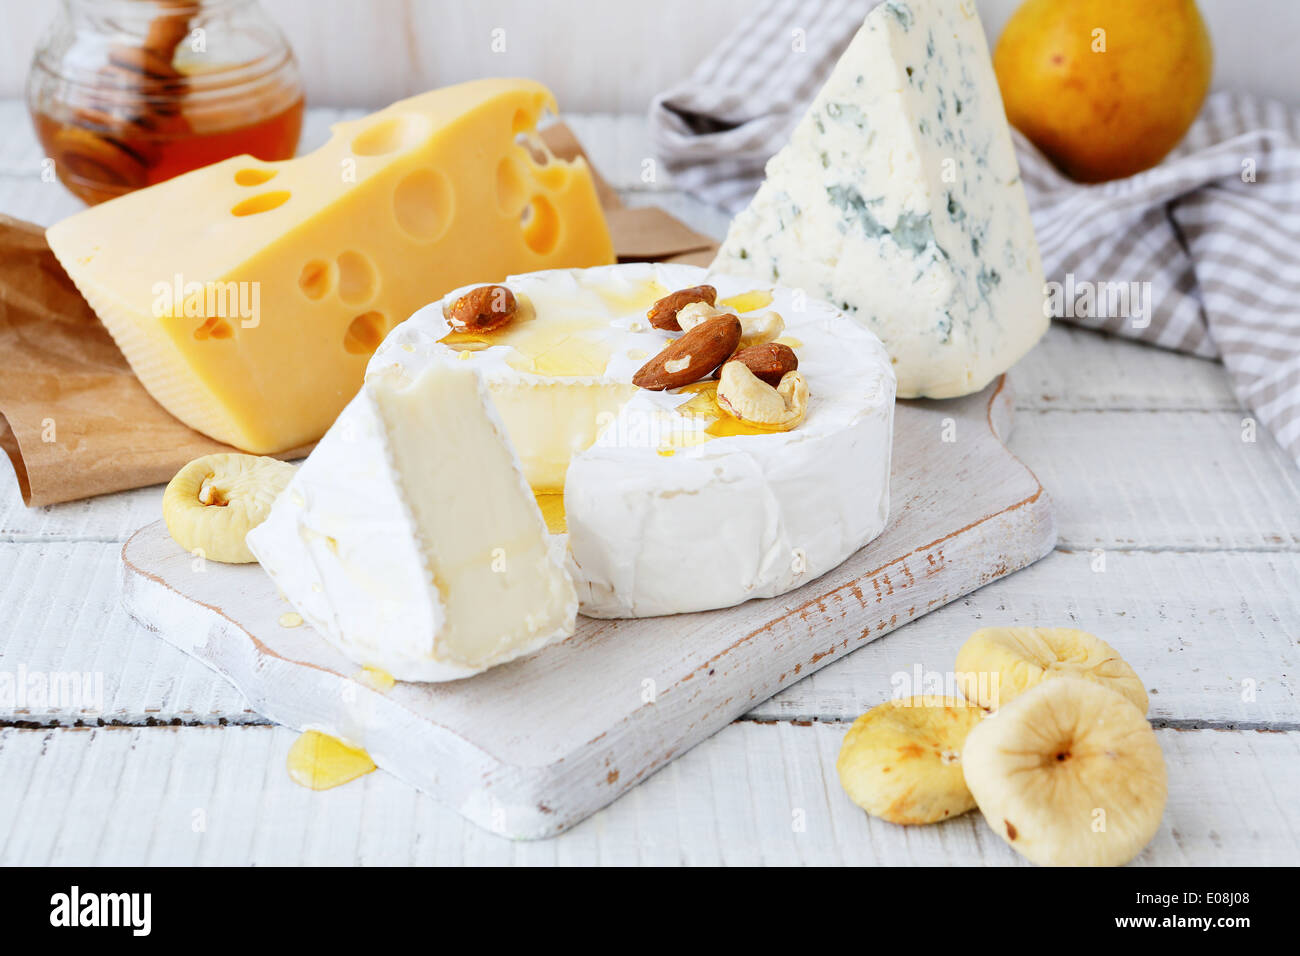 cheese platter with golden honey, food closeup - Stock Image